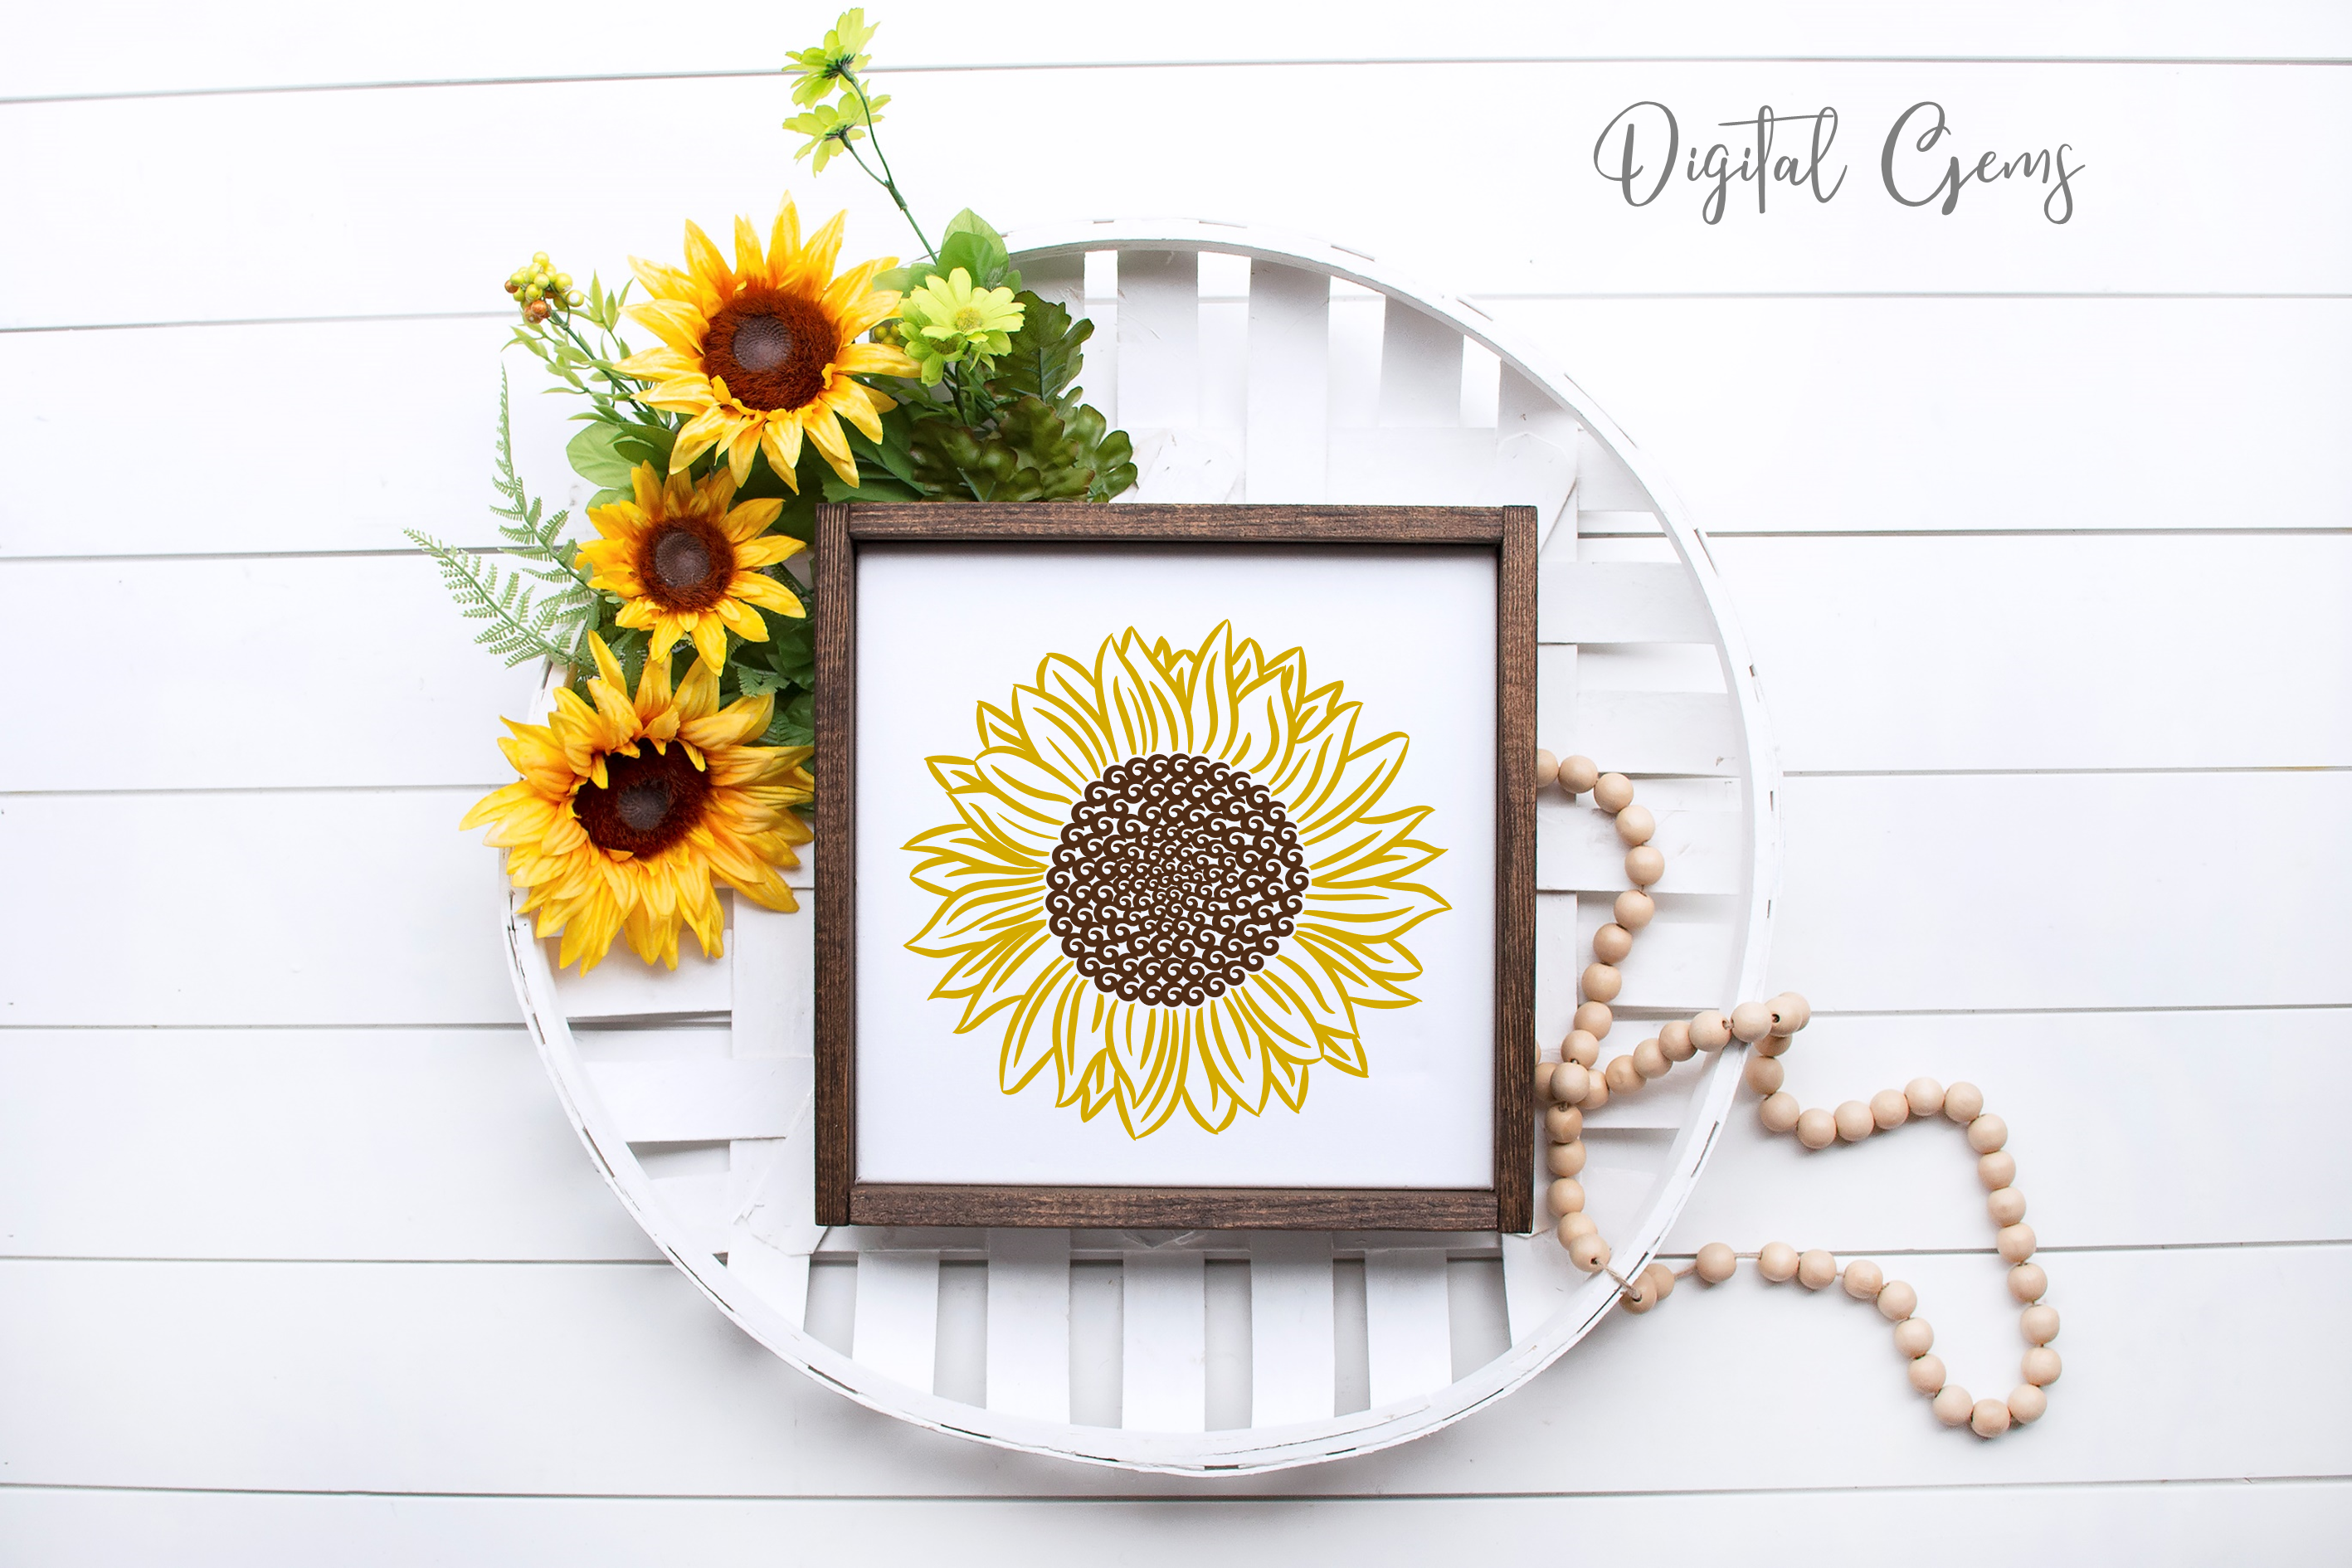 Sunflower designs SVG / PNG / EPS / DXF Files example image 2